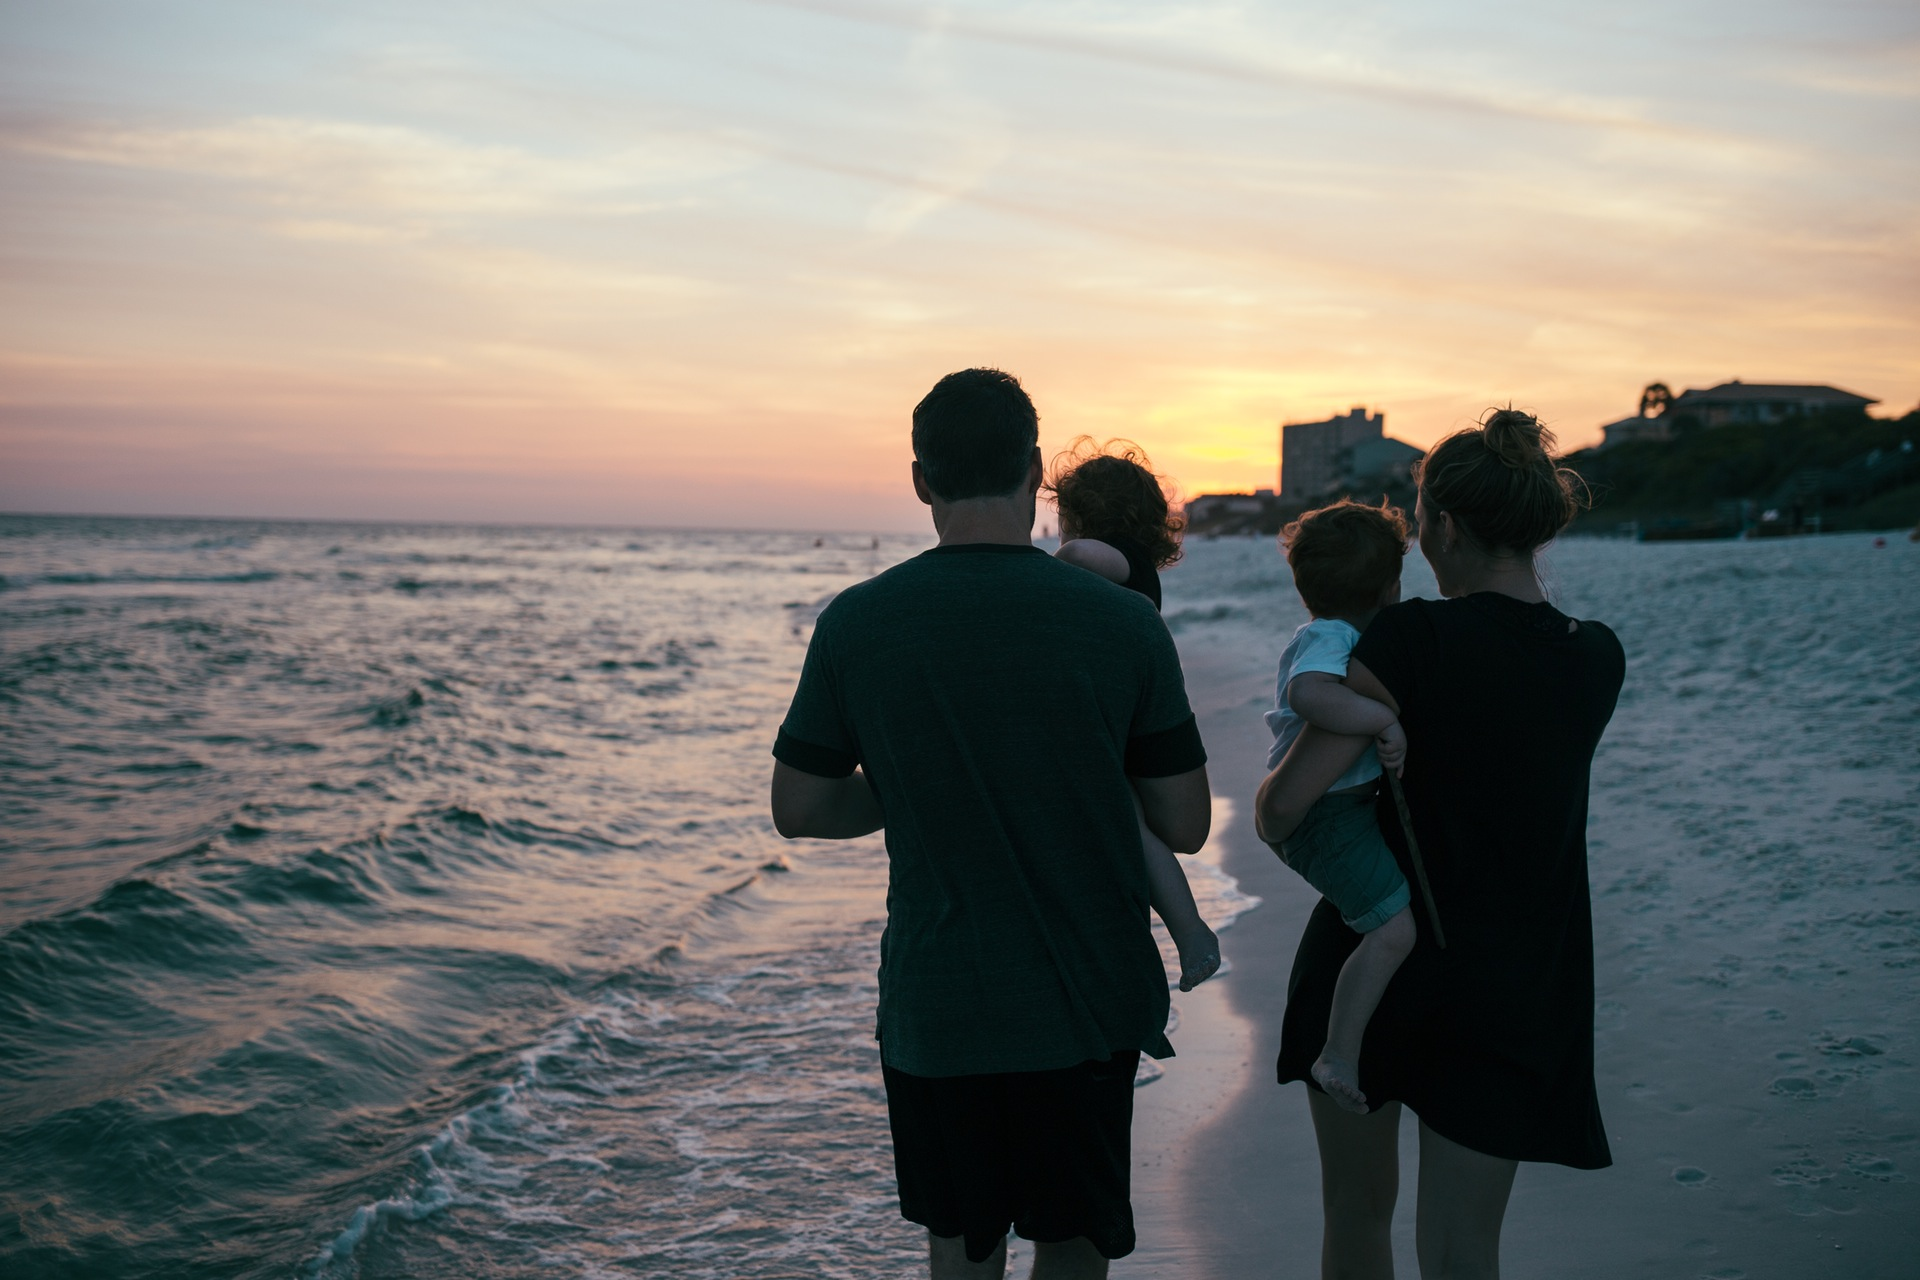 loss-to-love-building-stepfamily-podcast-americas-family-coaches-gary-barb-rosberg